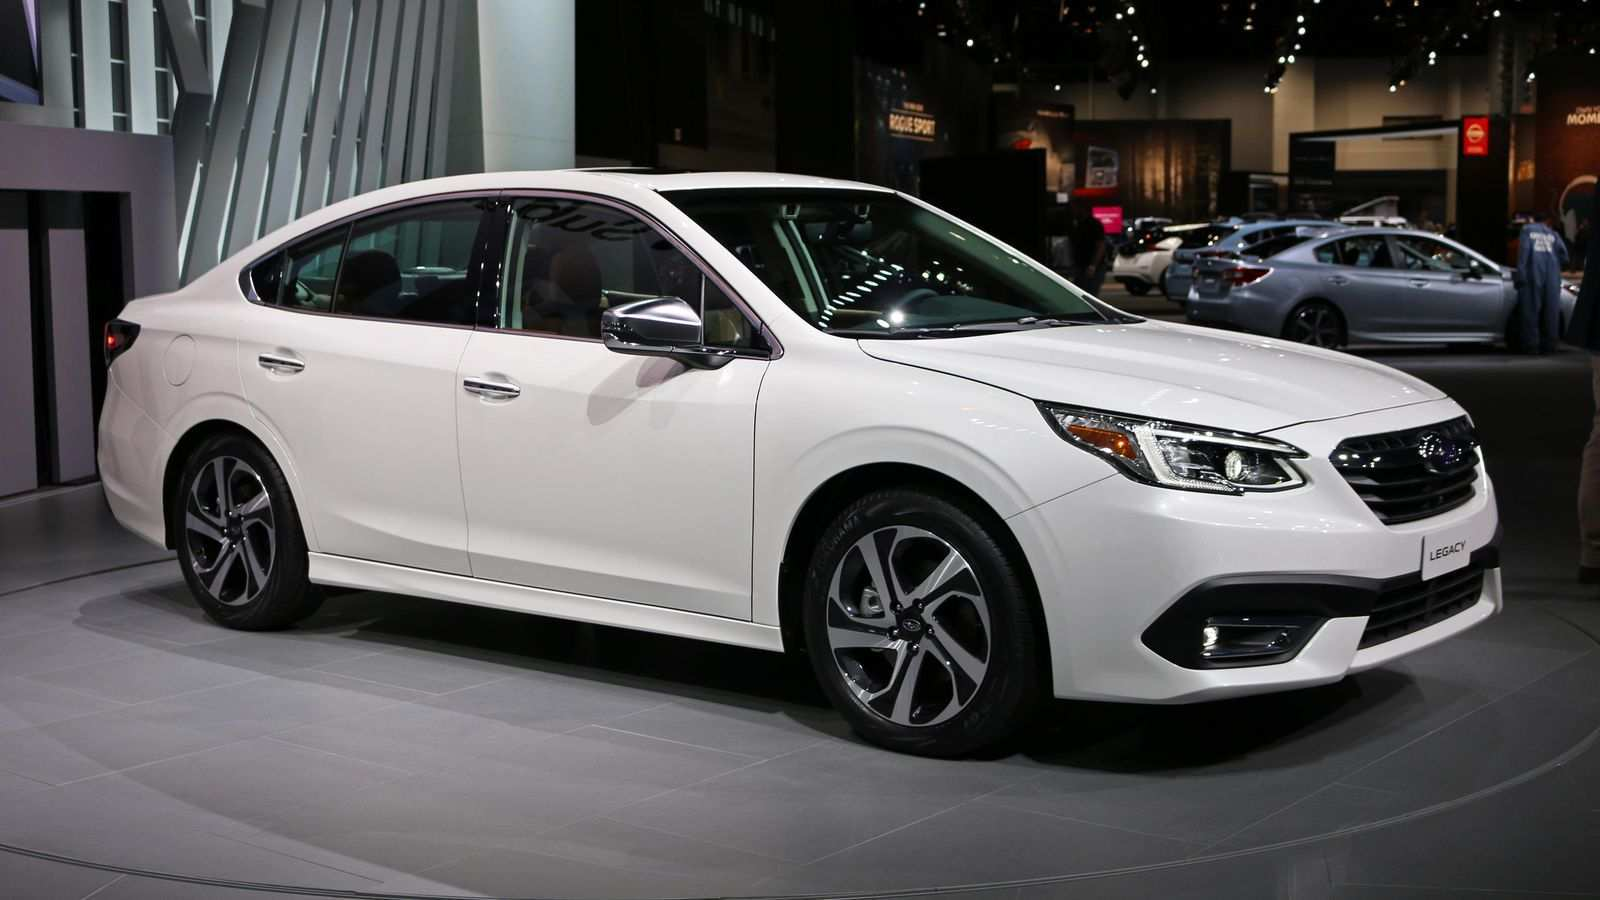 67 New Subaru Legacy 2020 Turbo Engine